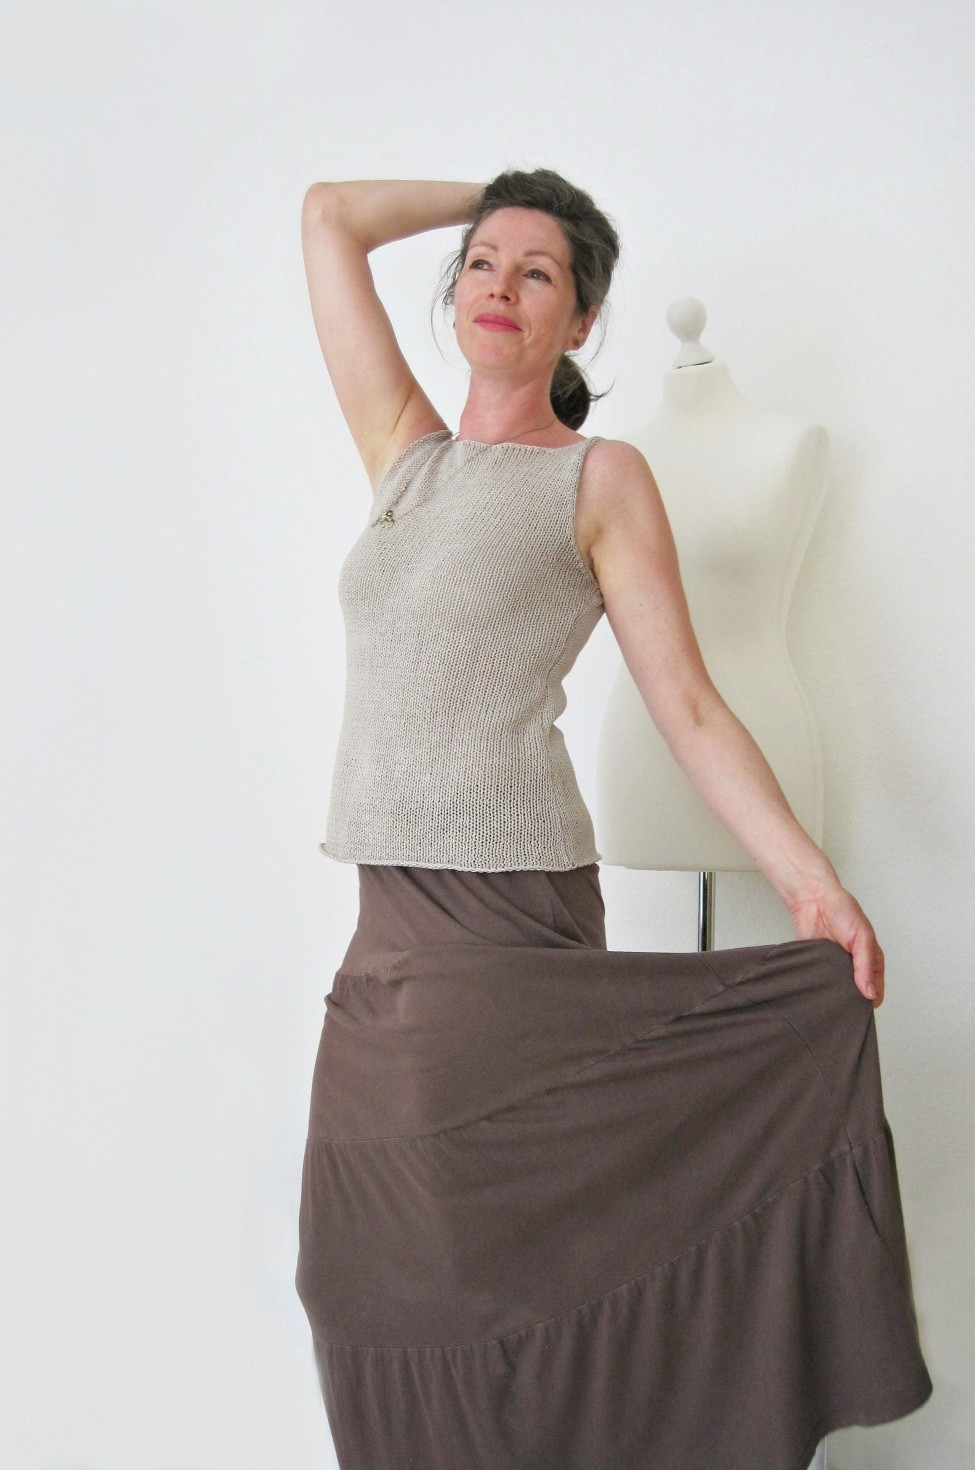 burda style Nutzerkreation melisa m. Upcycling Top - Rum Wie Num